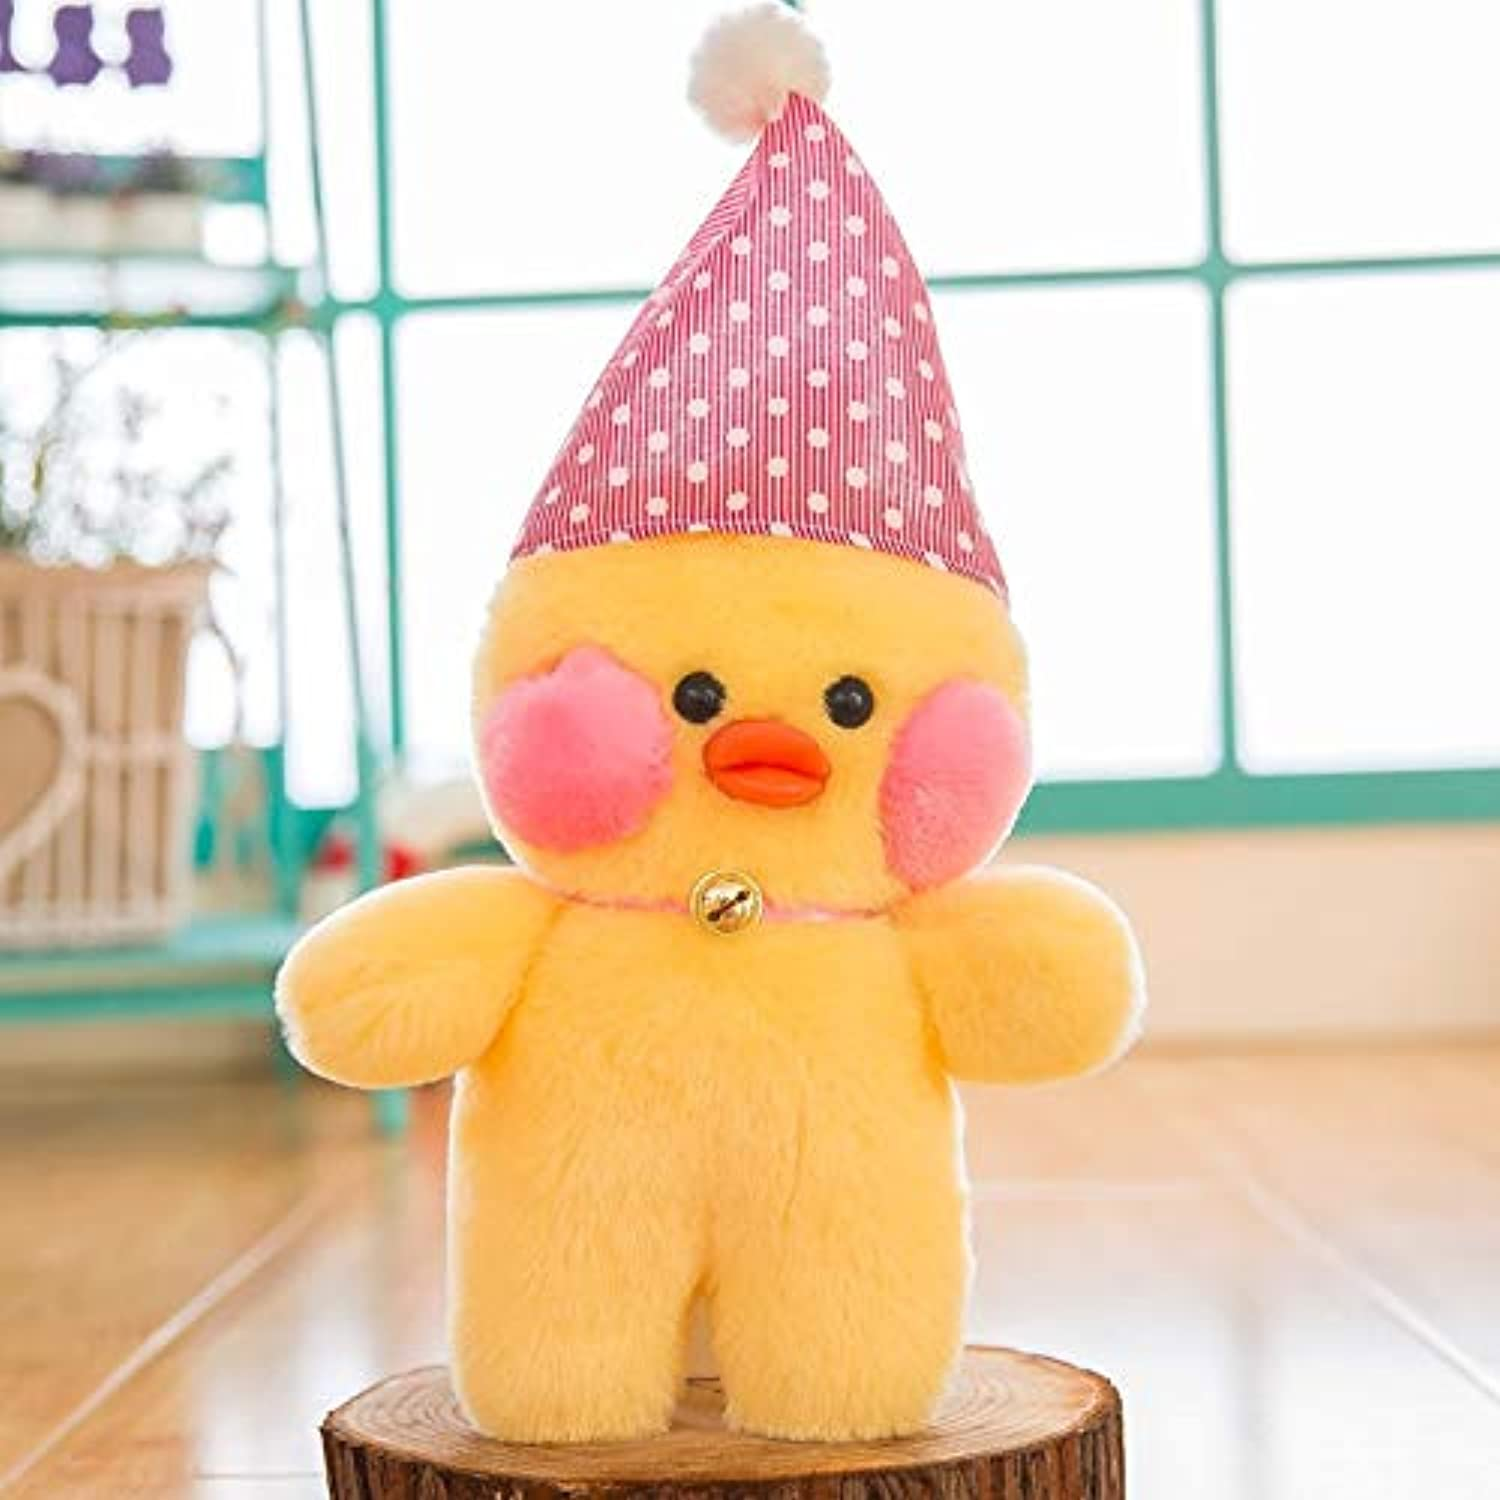 Happ trix LALAFANFAN Cute lalafanfan Cafe Mimi Kawaii Yellow Duck Stuffed Plush Toy Fashion Doll Pillow hyaluronic Acid bluesh Birthday Wedding Gift 26cm Pink